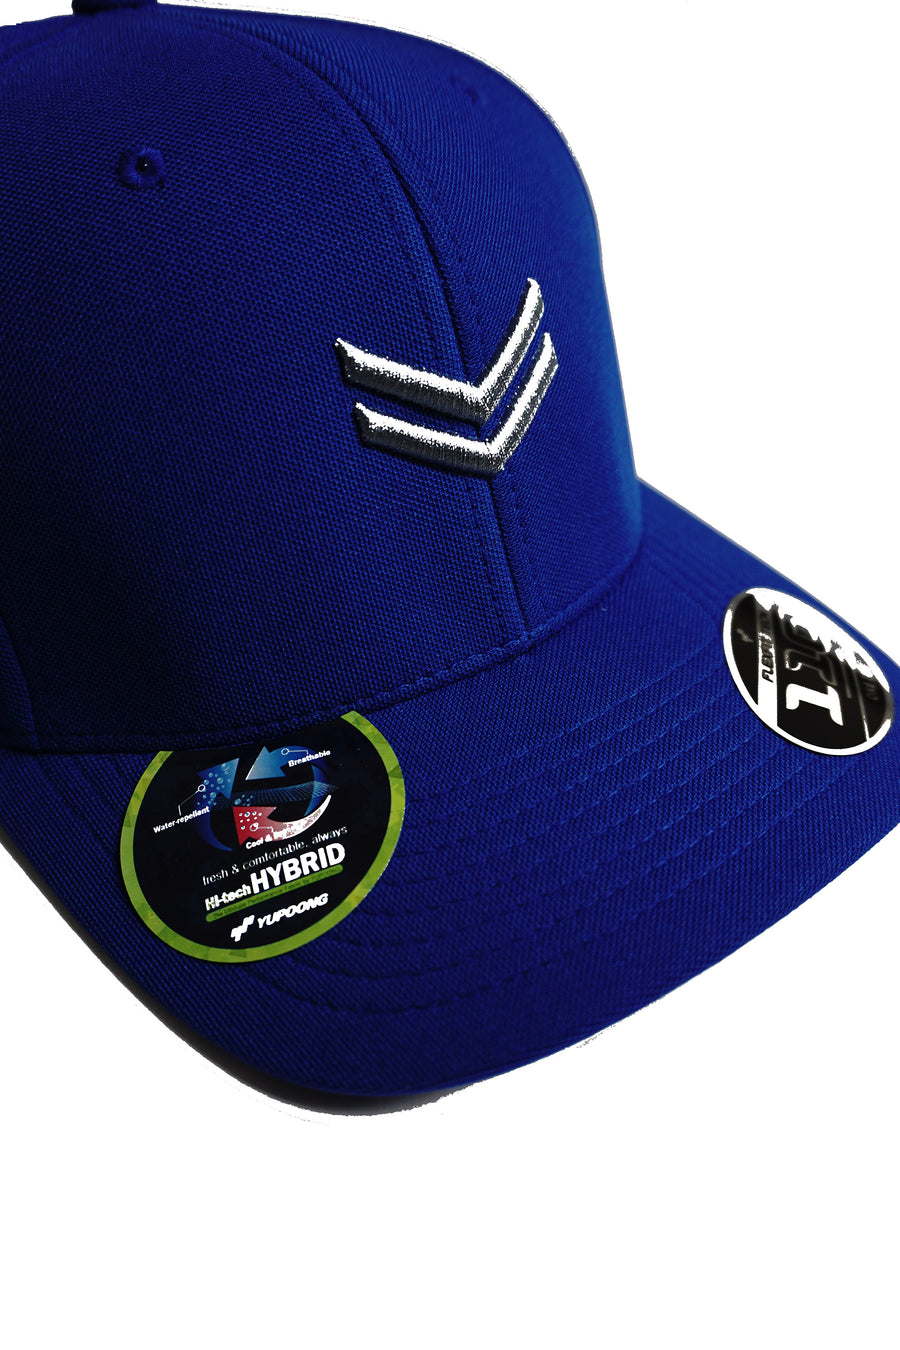 Dri-Fit Royal Blue Hybrid Cap